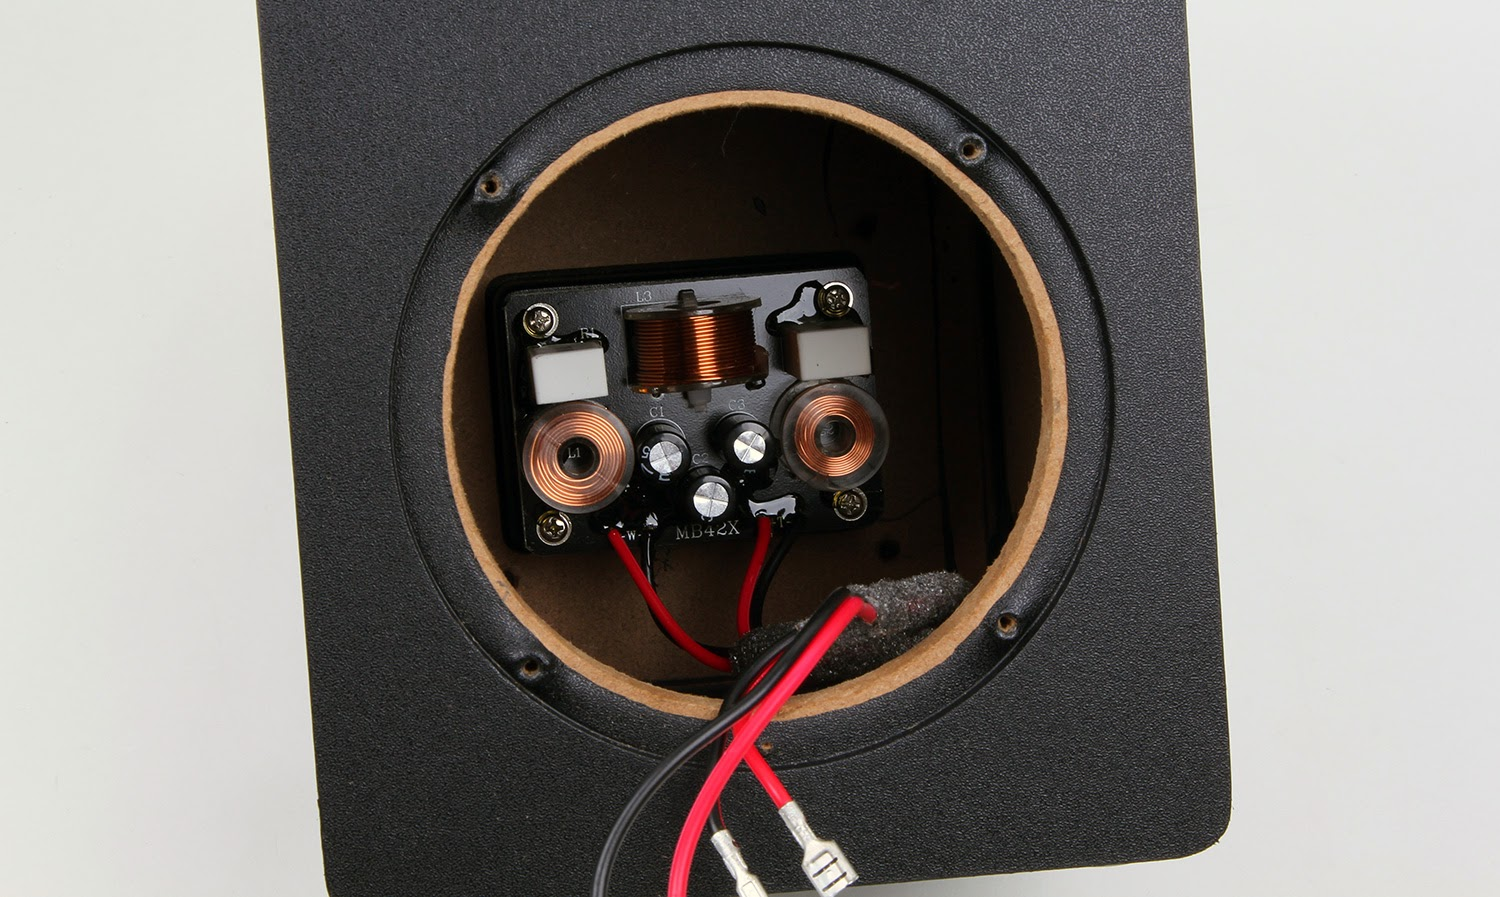 Budgetphile Budget Wiring The Reality Of Copper Clad Aluminum Wire Home Audio Speakers One Other Visual Change I Spotted Is Translucent Colored Binding Post Nuts Showing Off A Bit Gold Plated Metal Underneath